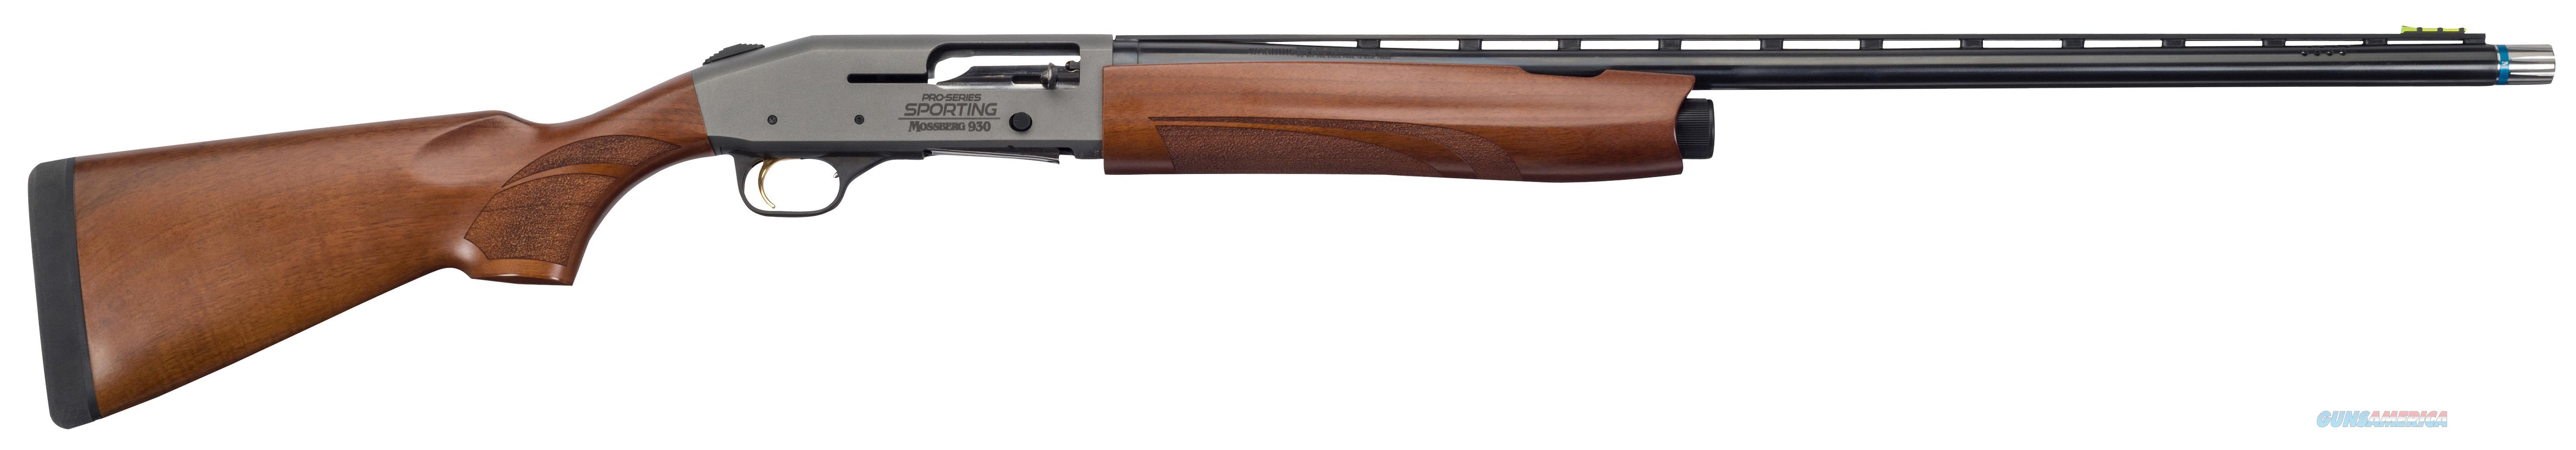 "Mossberg 85139 930 Pro-Series Sporting Semi-Automatic 12 Gauge 28"" 3"" Walnut Stk Blued Cerakote/Blued Barrel 85139  Guns > Shotguns > MN Misc Shotguns"